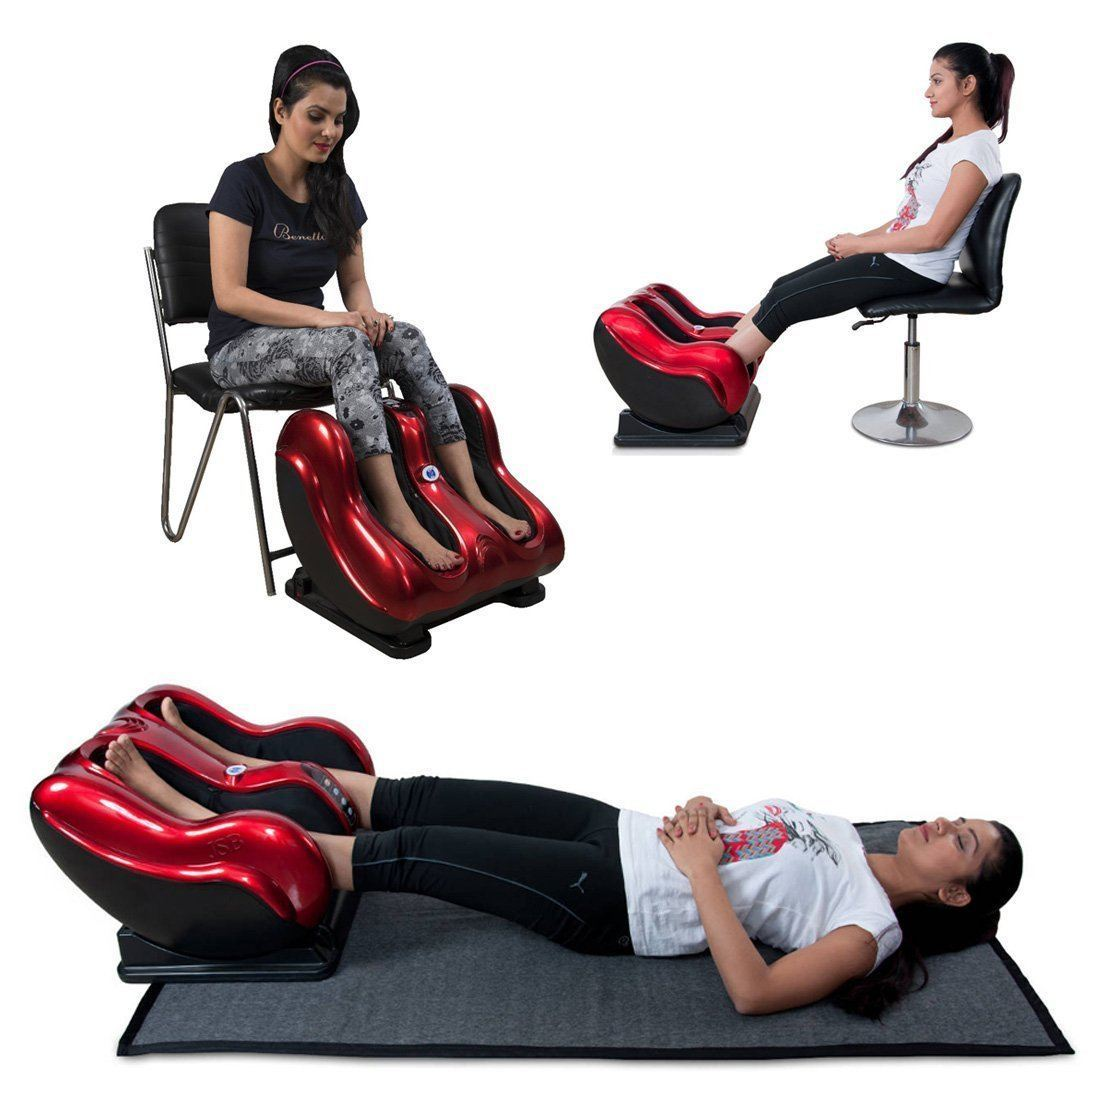 Massager - Leg And Foot And Calf Kneading Rolling Vibration Heating Massager